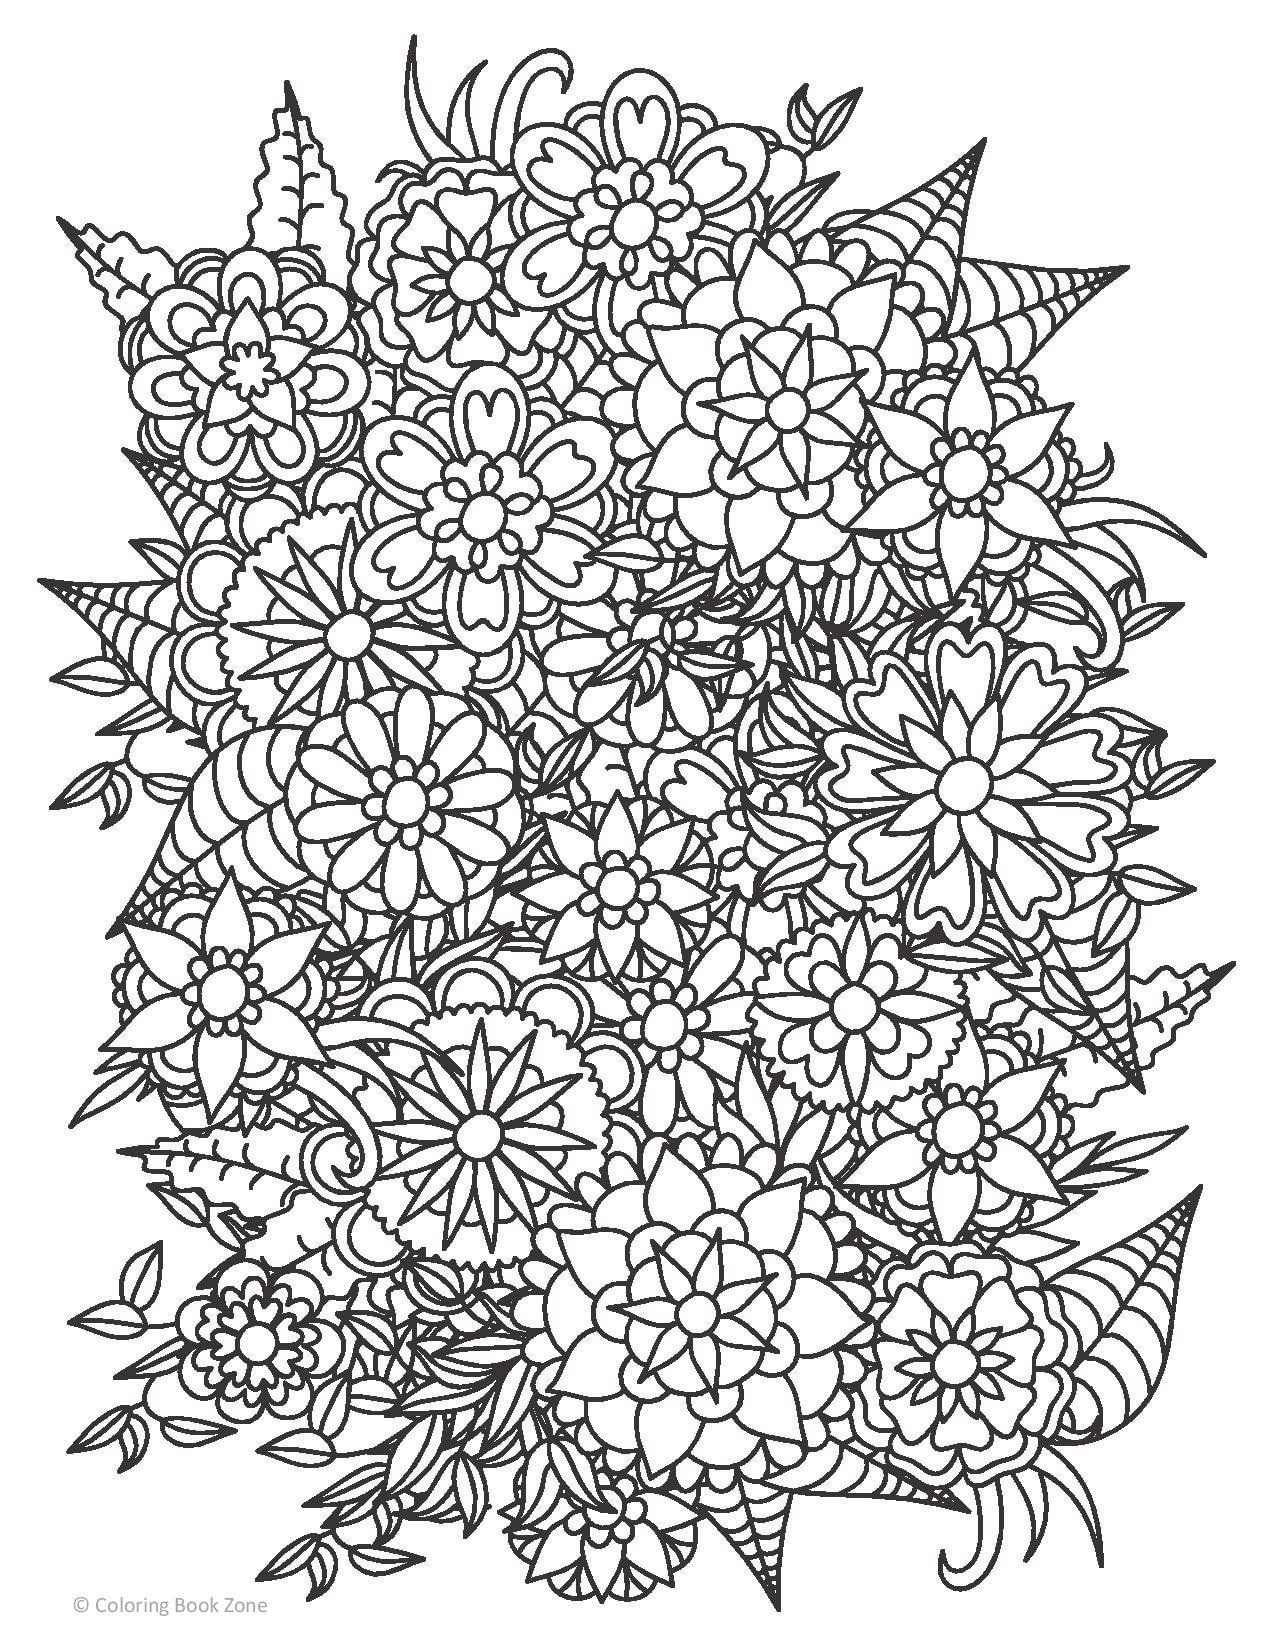 Take Time To Color The Flowers Coloring Book Live Your Life In Color Coloring Book Zone Abstract Coloring Pages Flower Coloring Pages Coloring Books